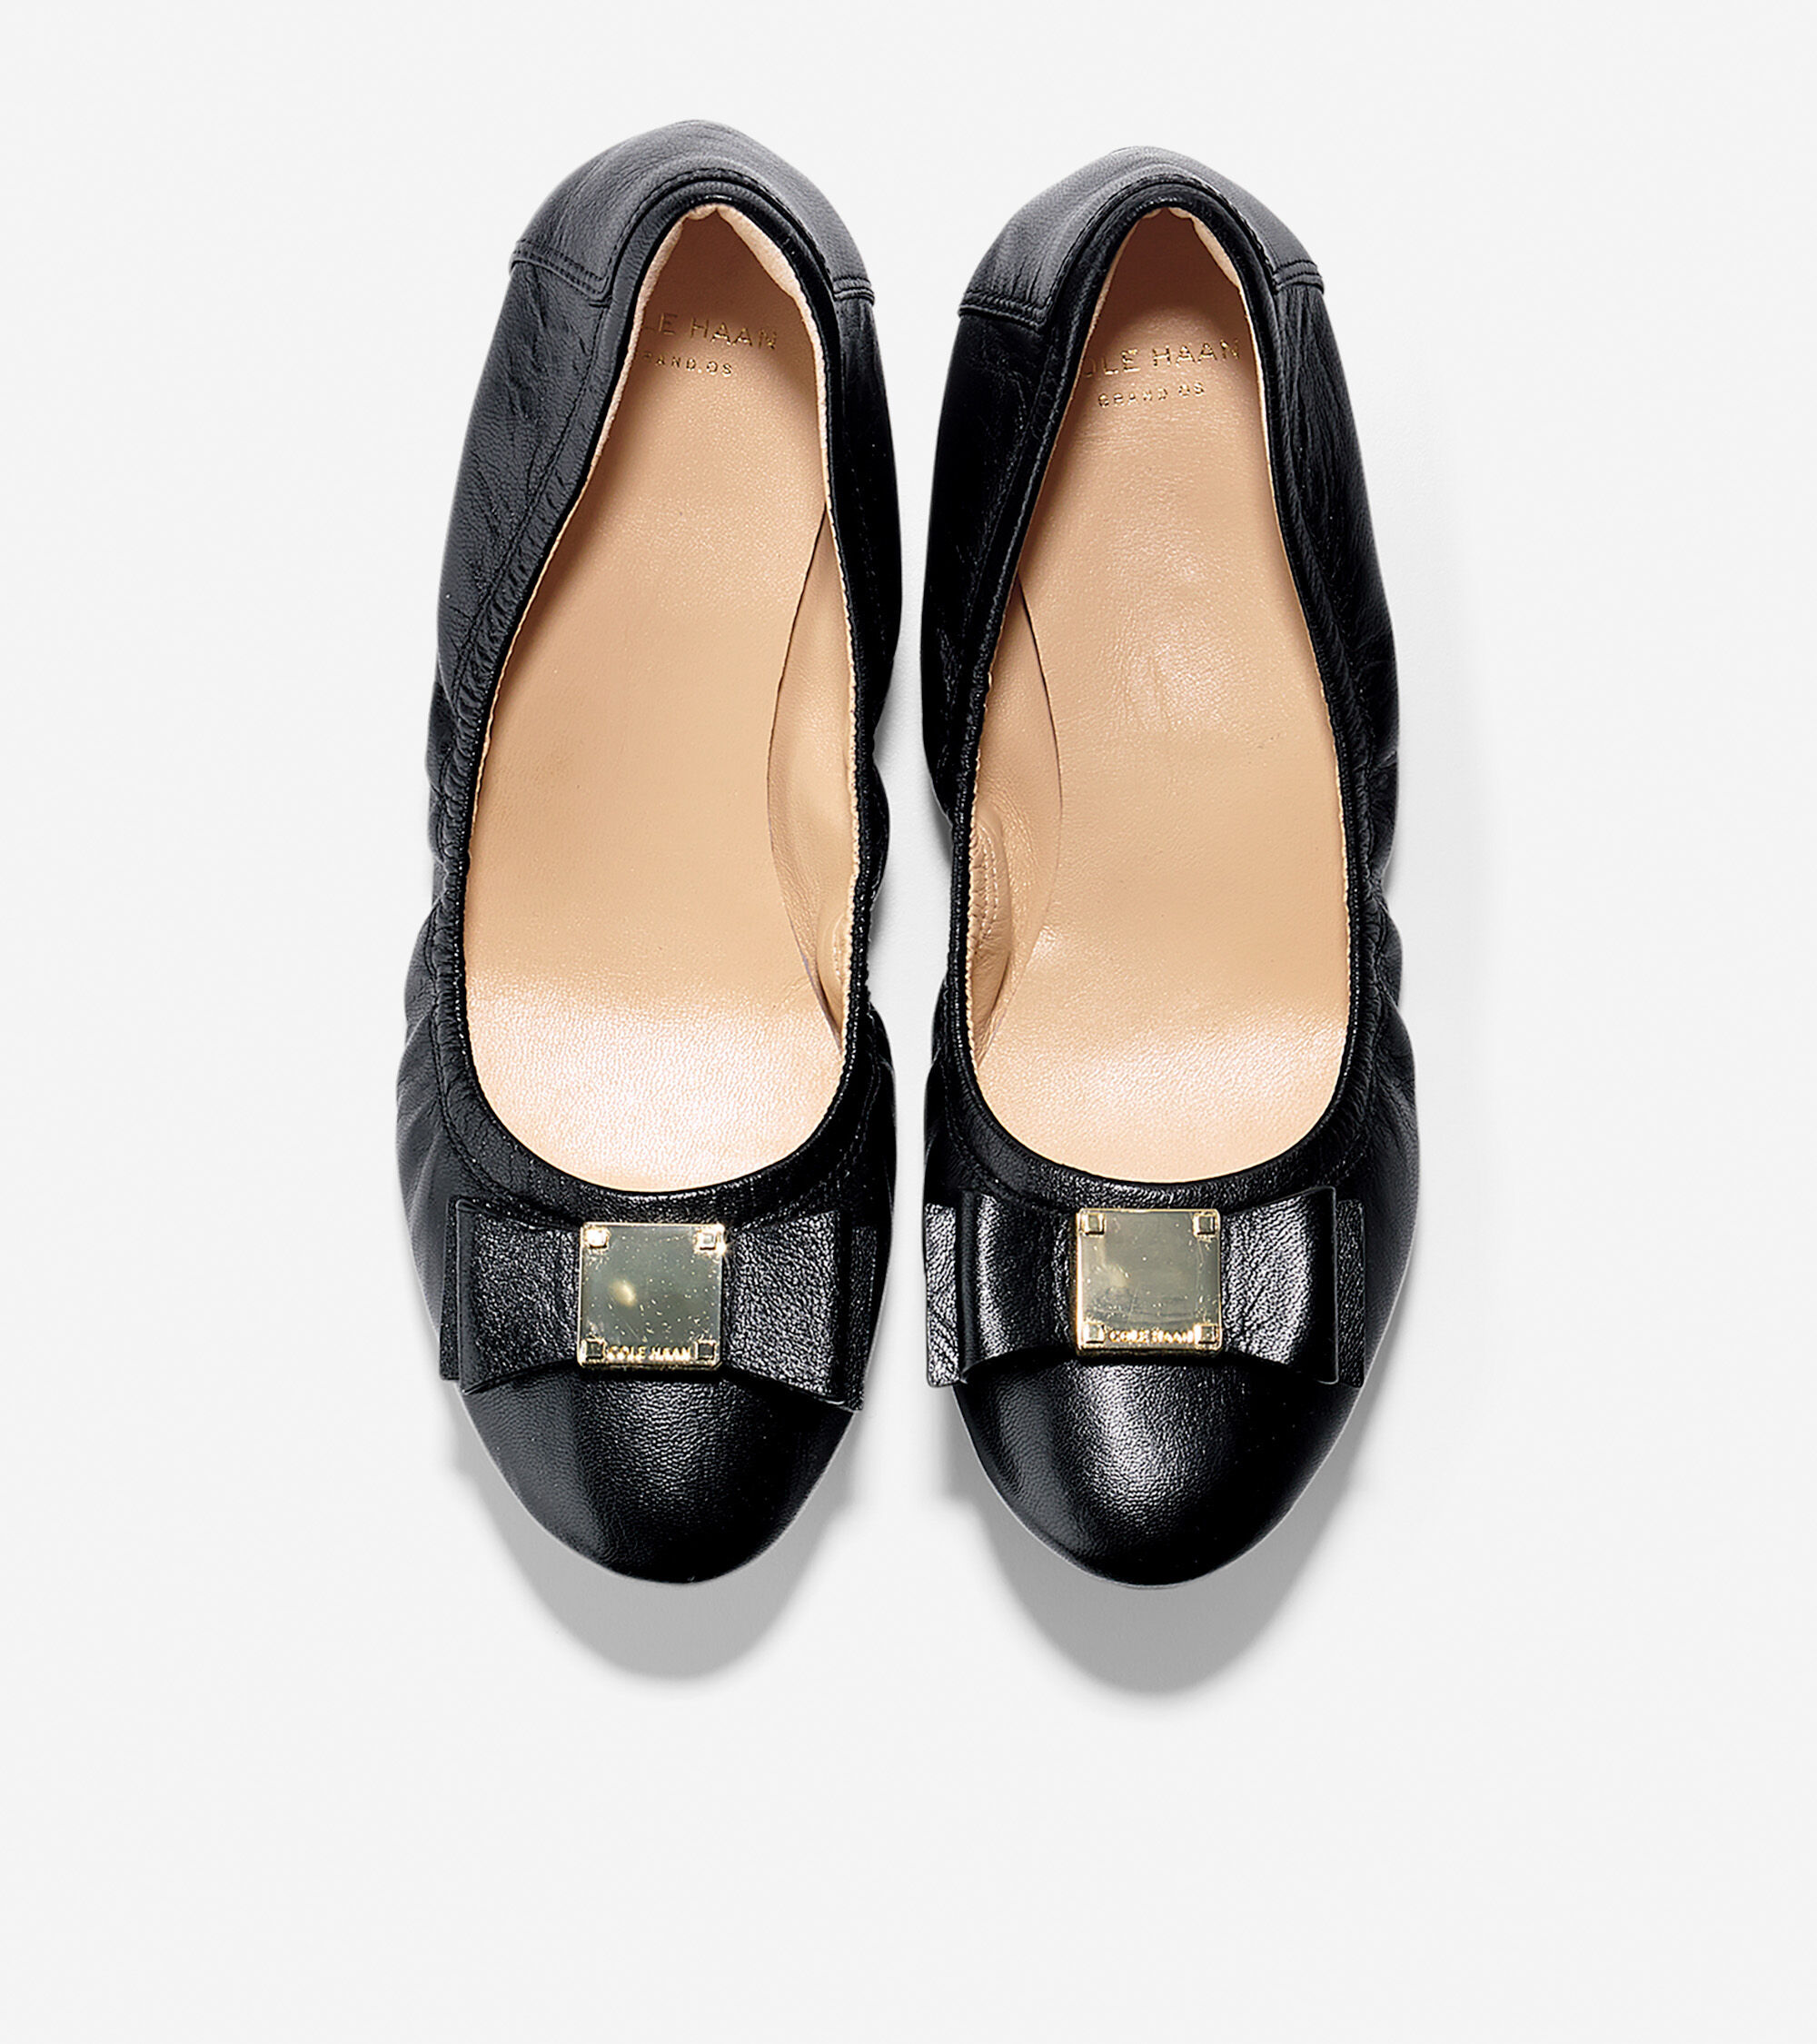 1e6e1c2401 Women's Tali Bow Ballet Flats in Black | Cole Haan